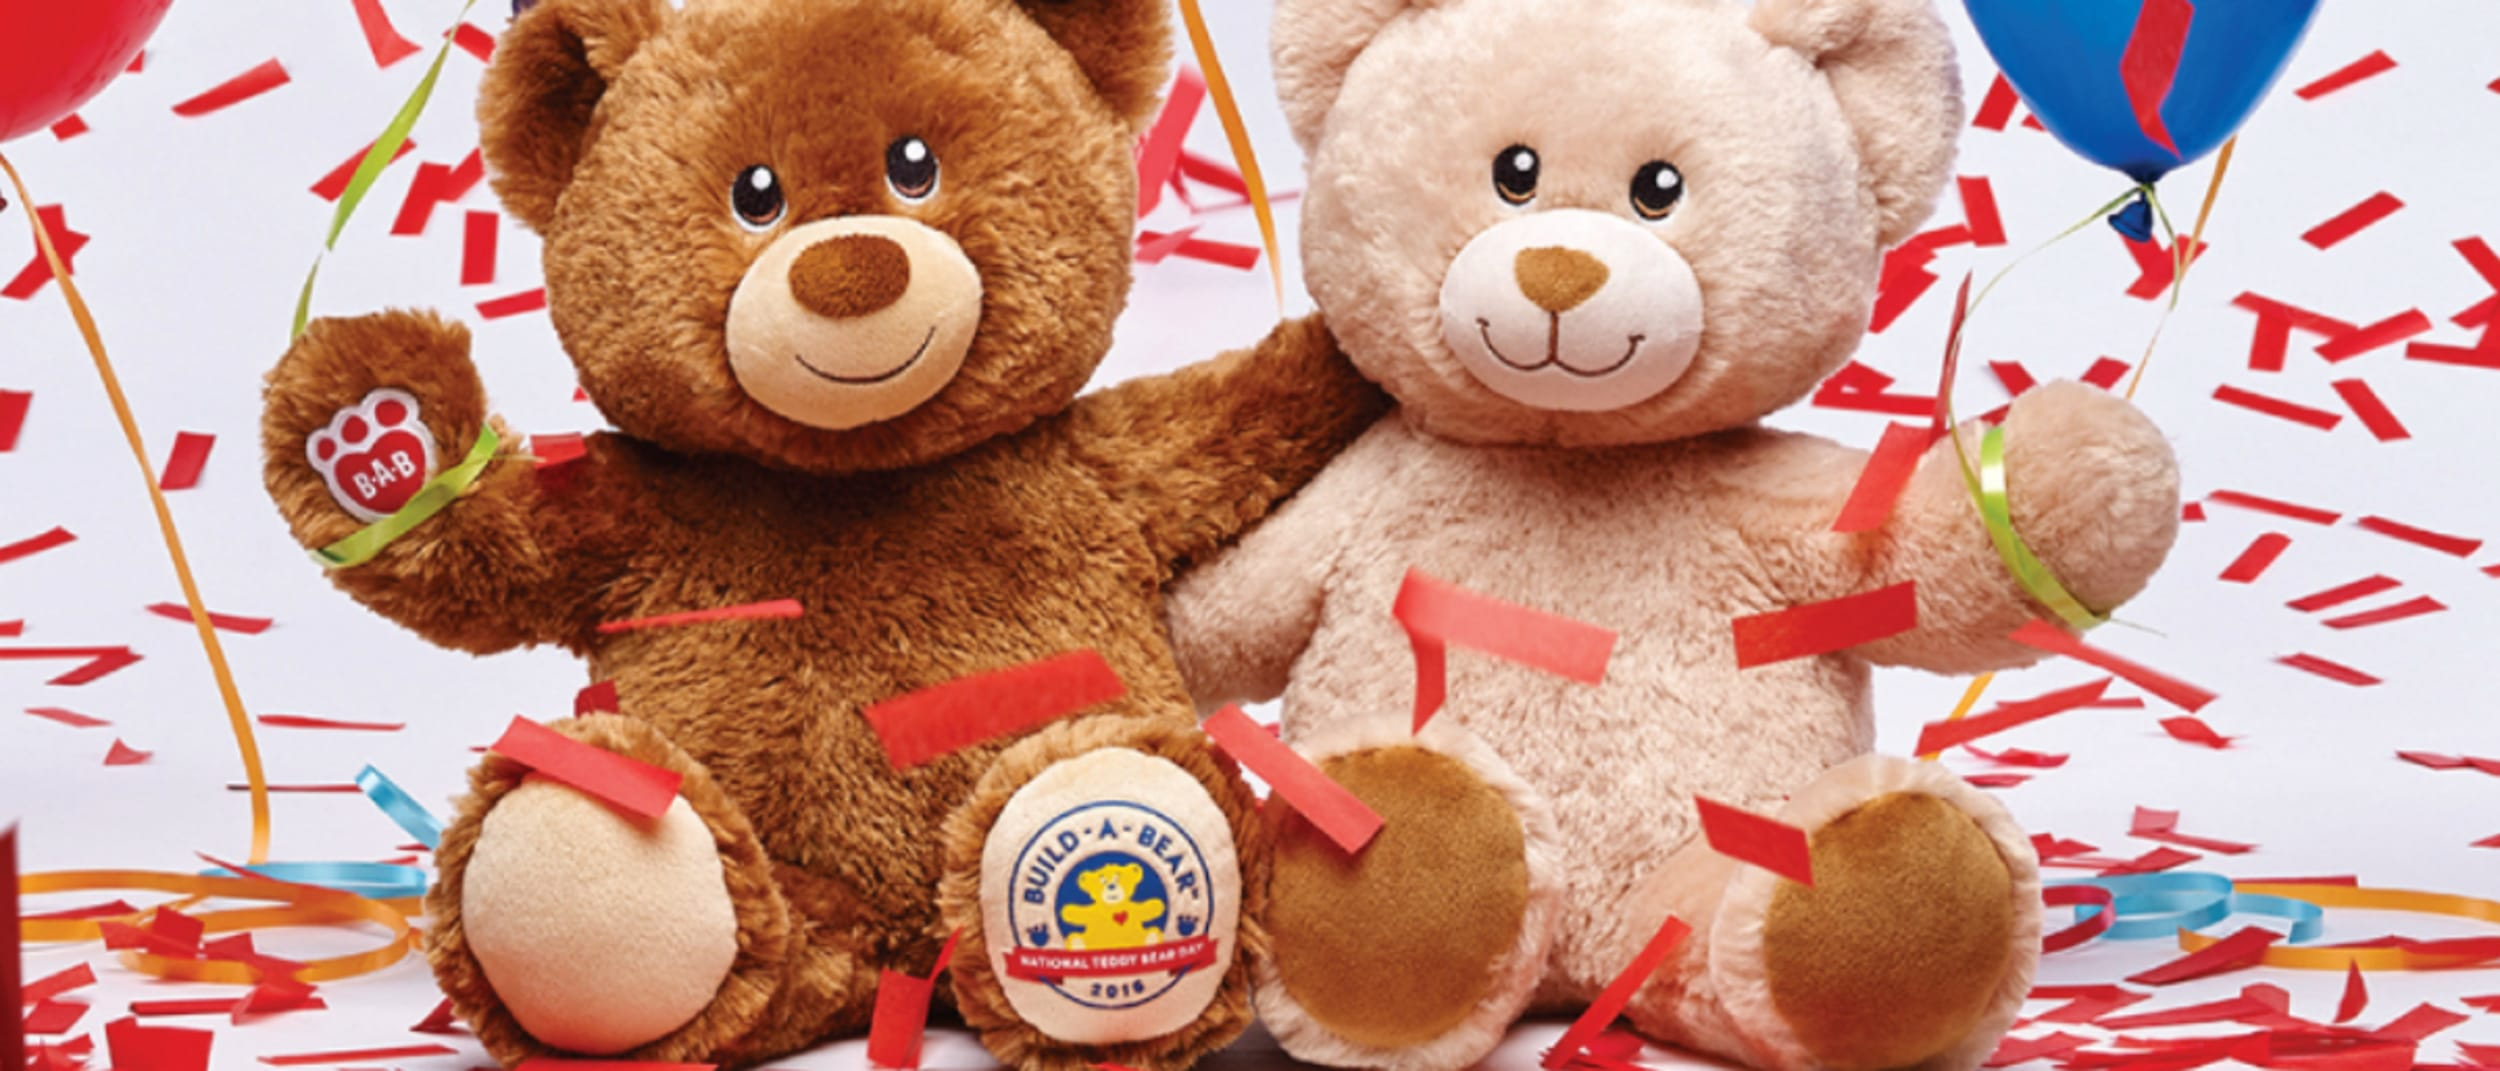 Give a gift you can hug from Build-A-Bear